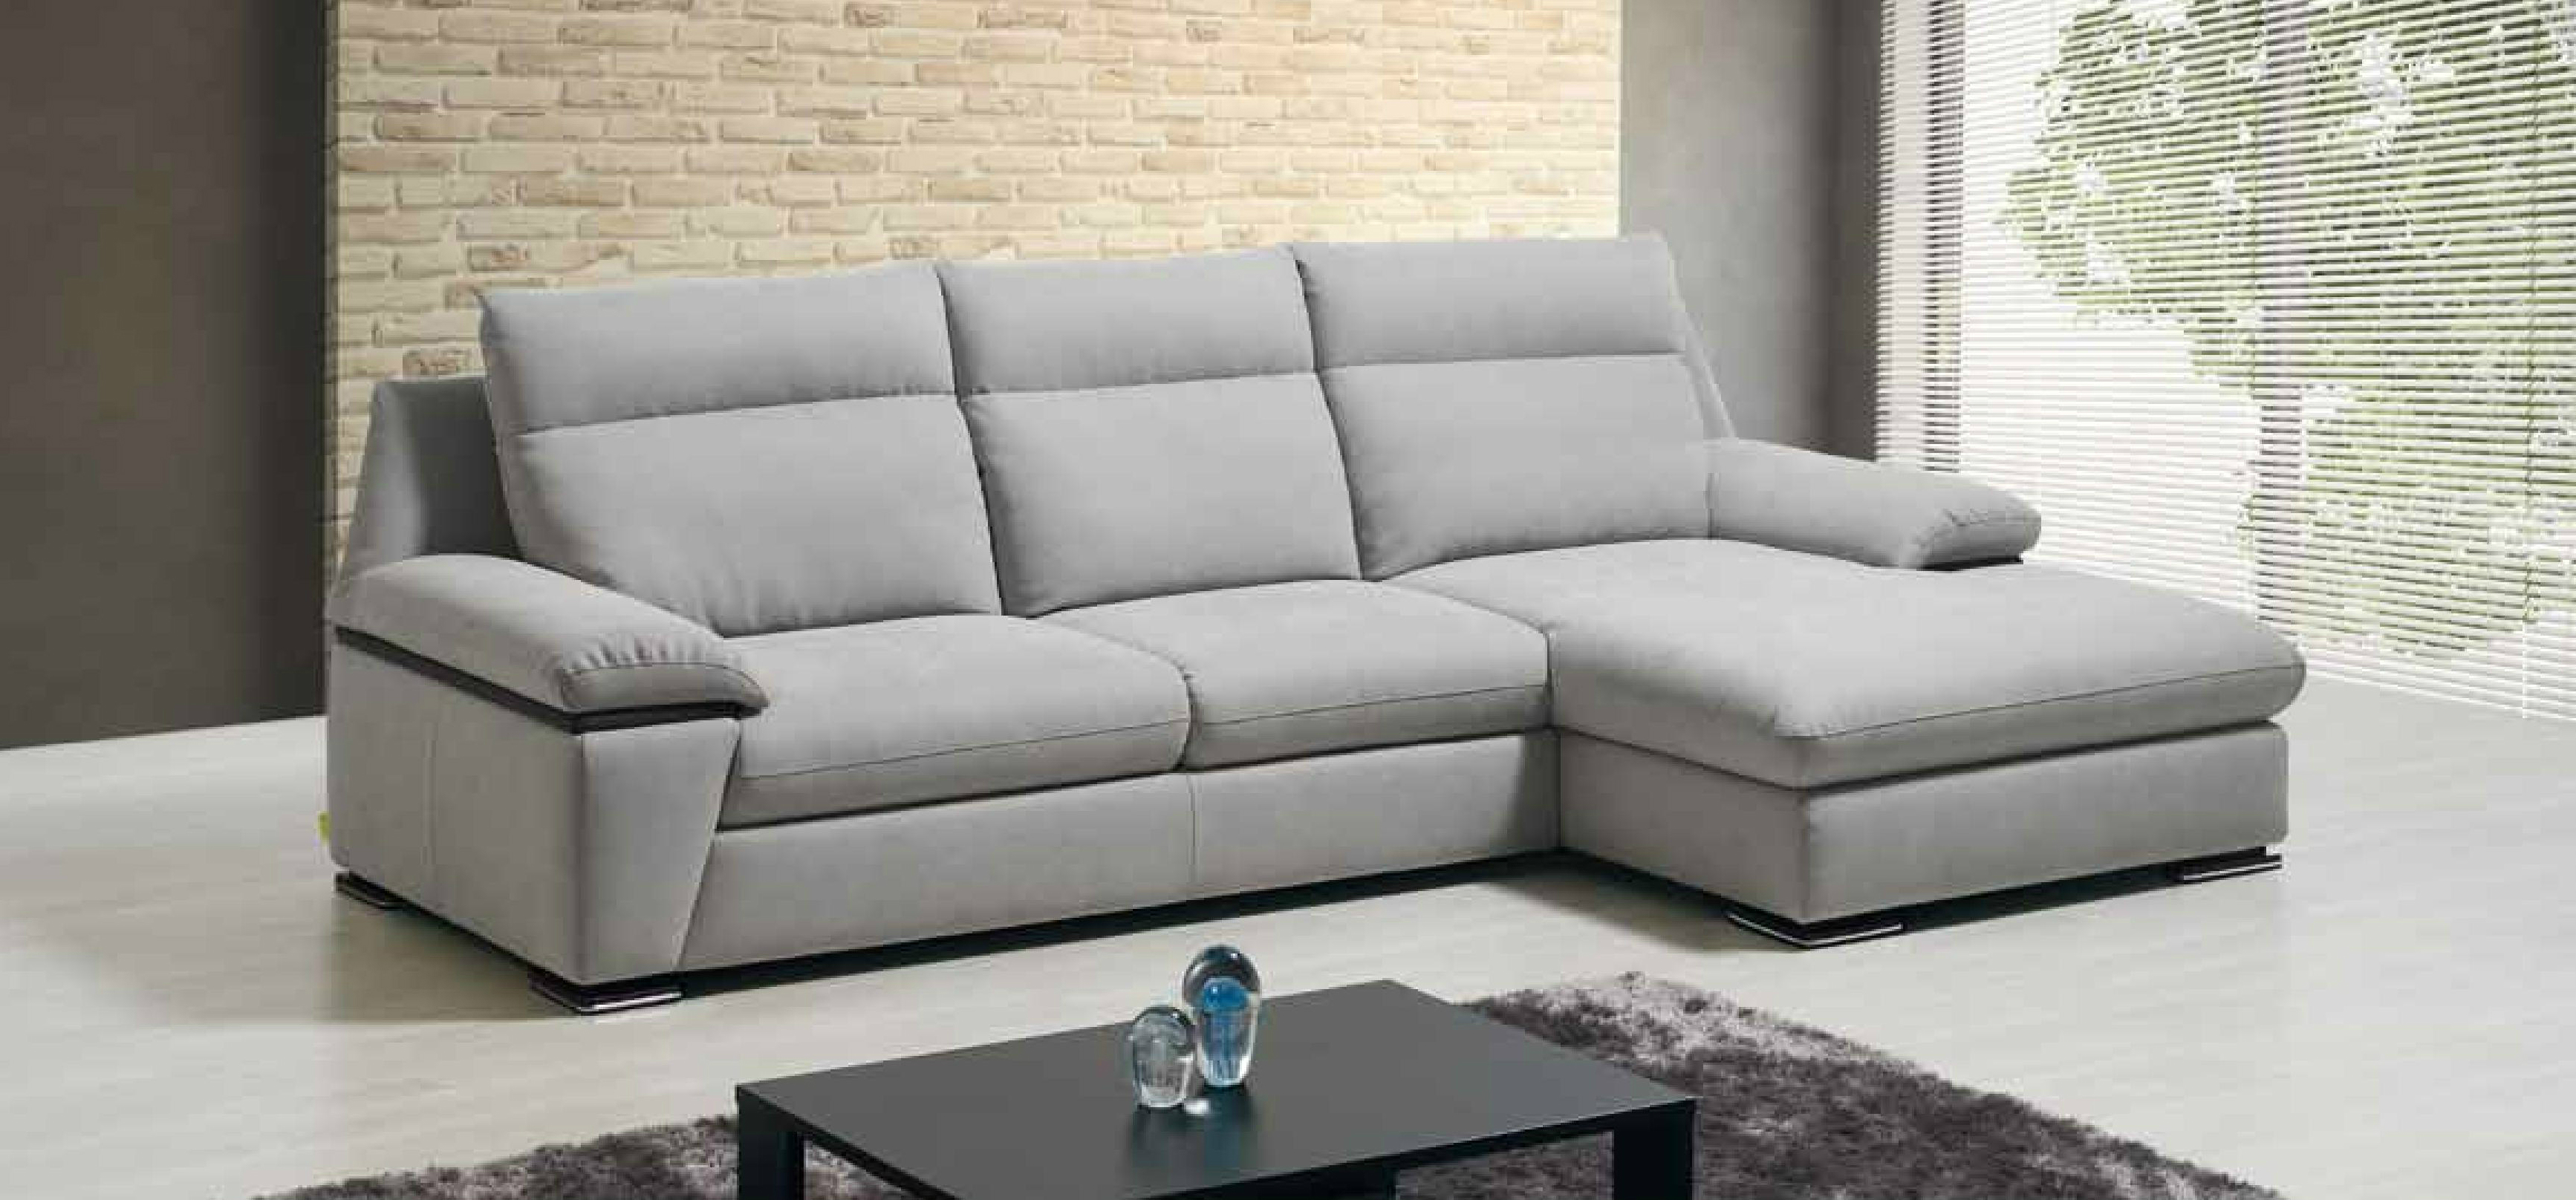 sof sheryl chaise long mundo do sof ForMundo Sofas